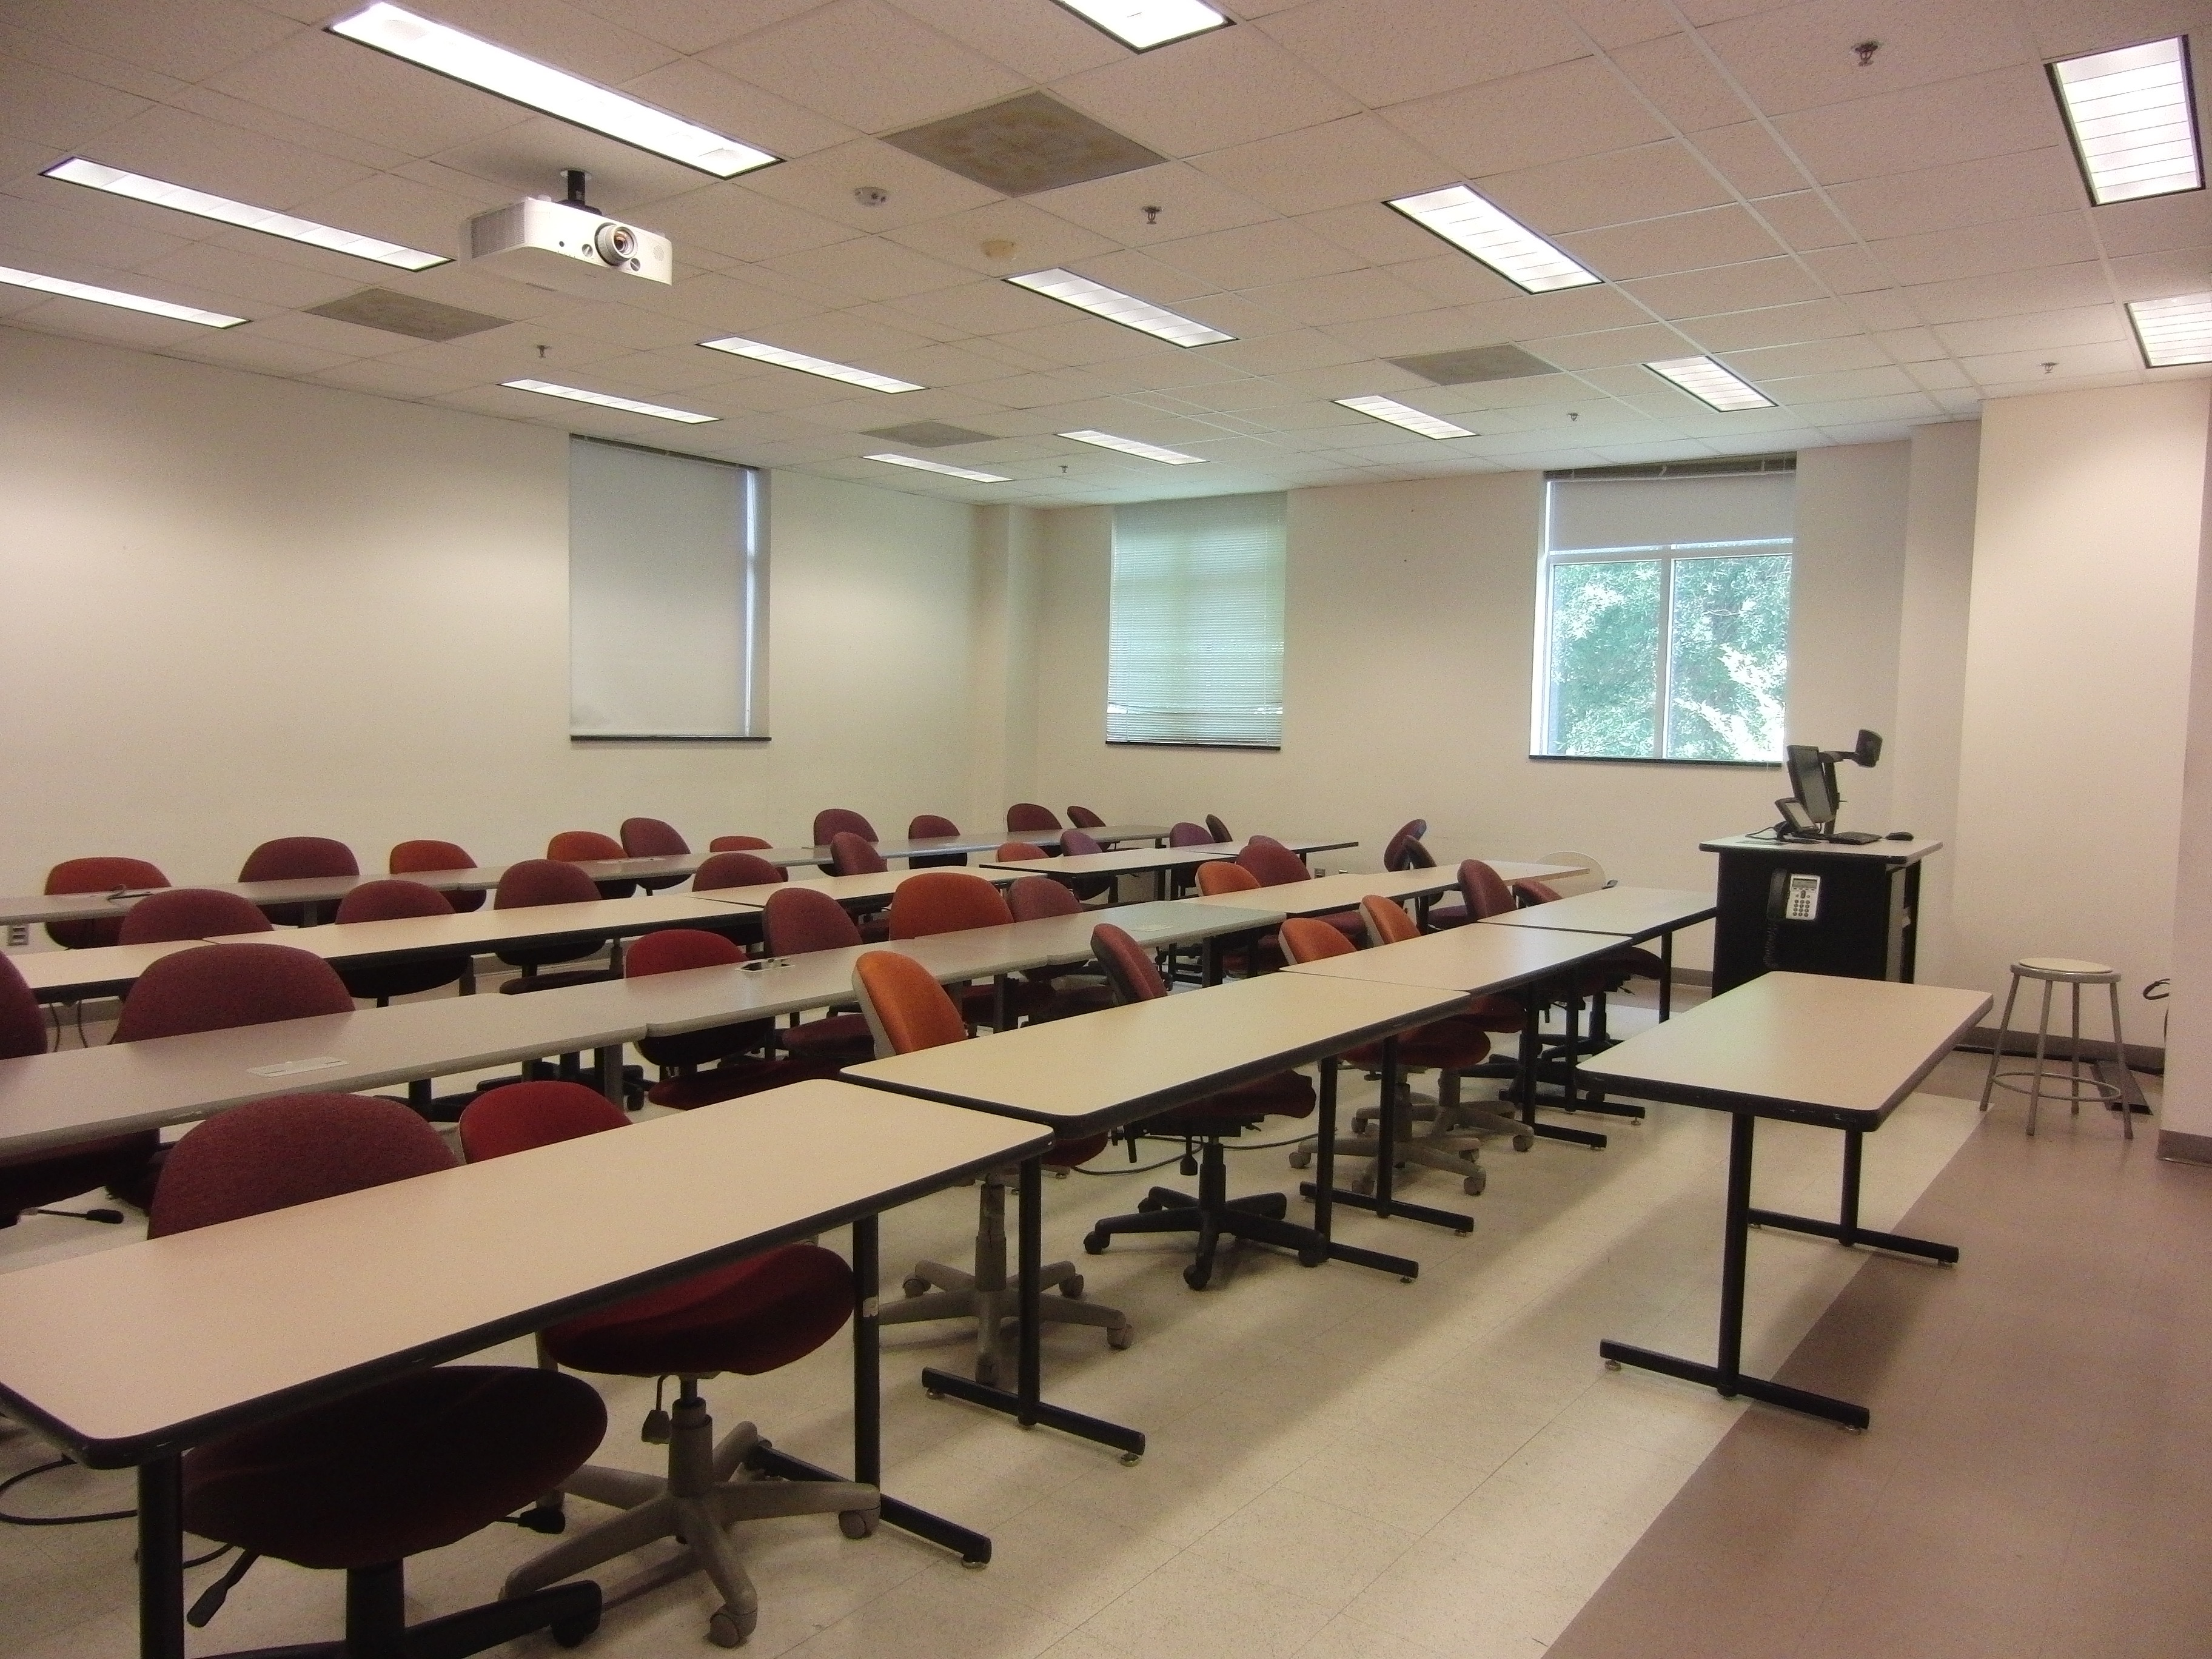 Photo of the classroom space taken from the entrance of the room showing stationary tables, mobile chairs, and the instructor's station